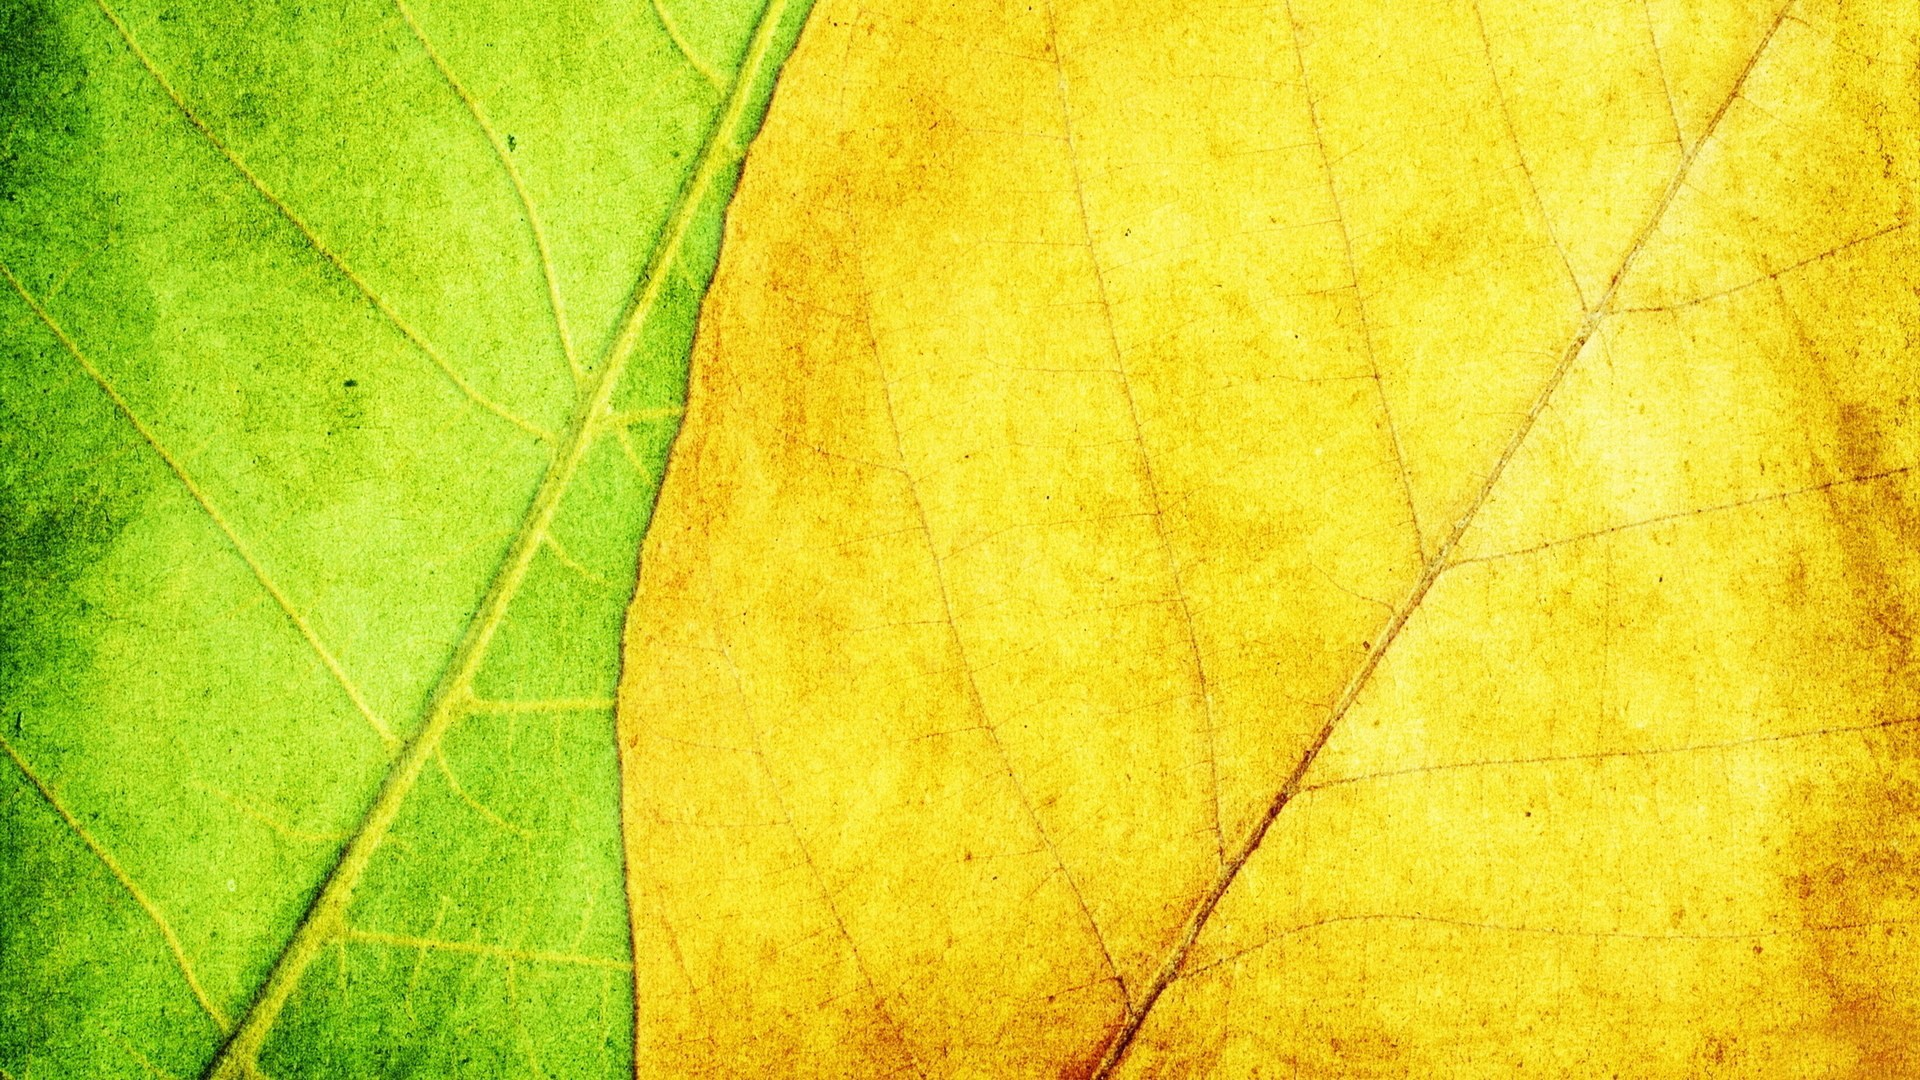 1920x1080px-leaf-for-mac-computers-by-Greydon-Turner-wallpaper-wpc9001179